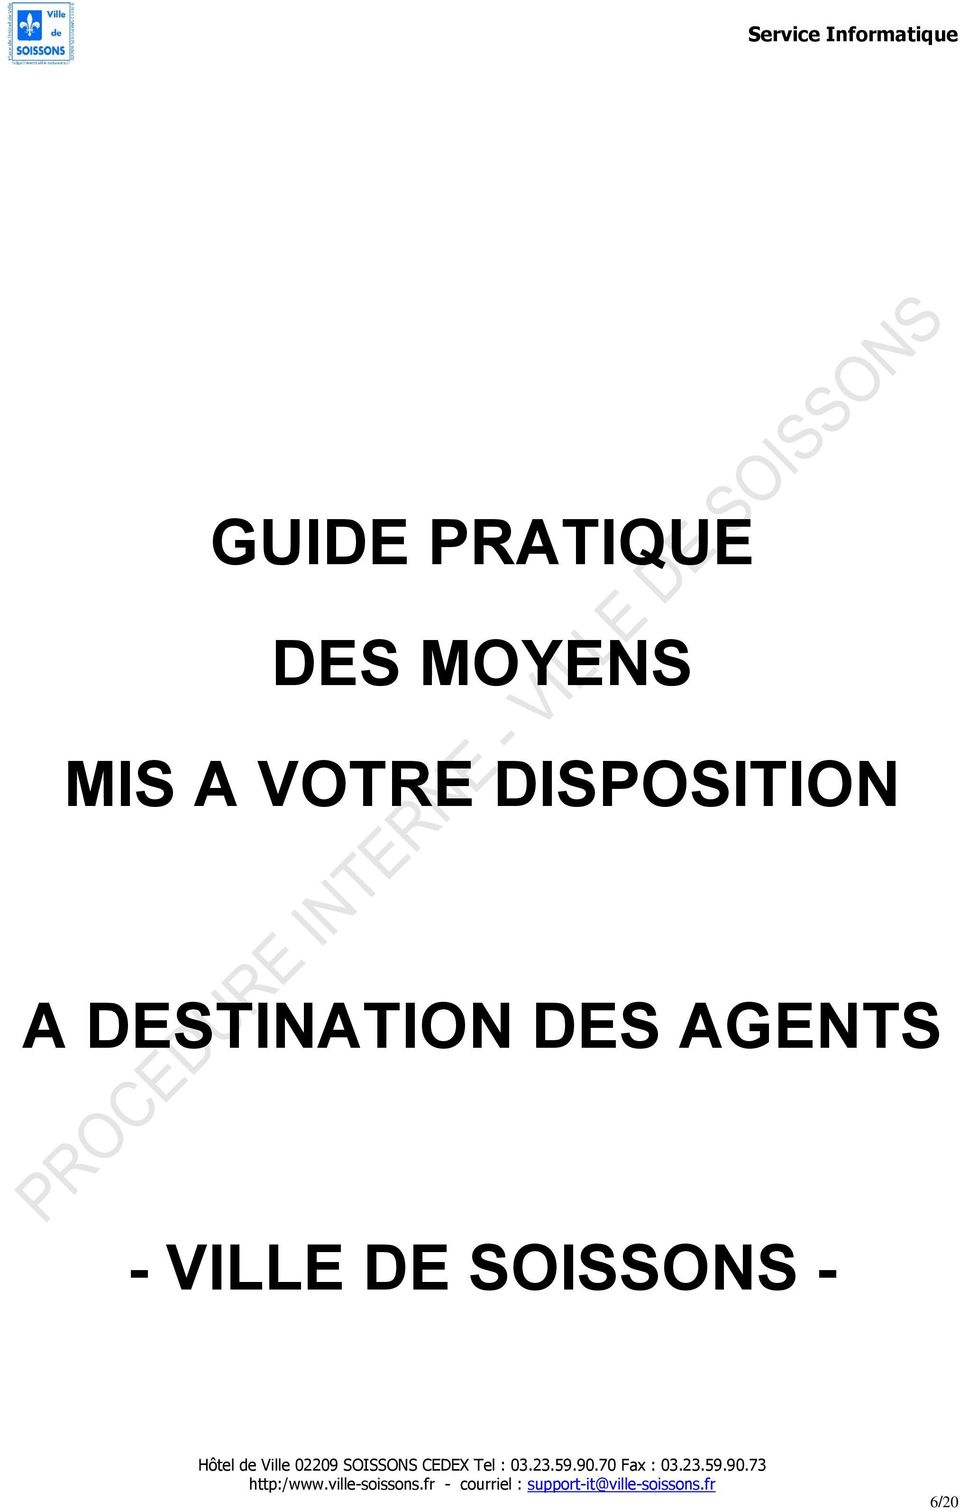 DESTINATION DES AGENTS -